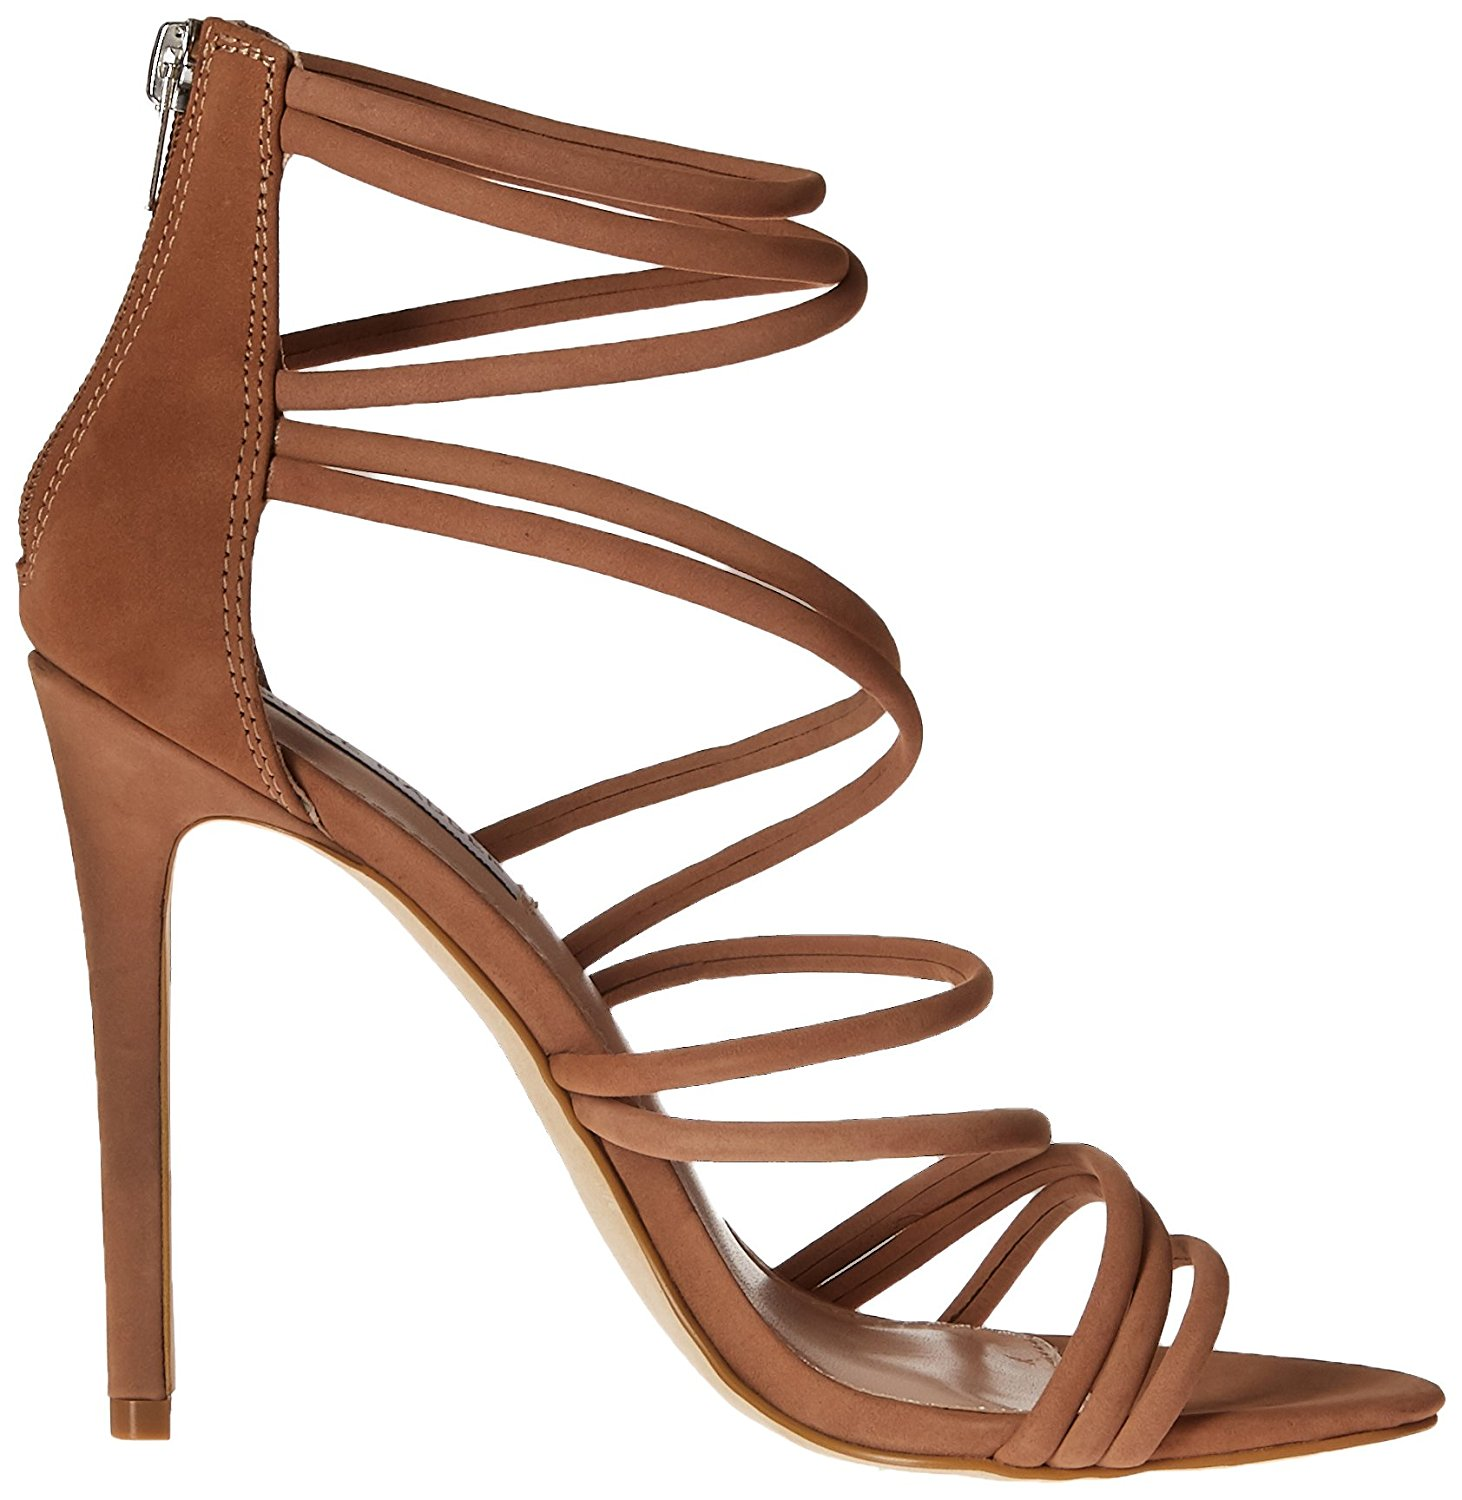 21f3b312fdc Steve Madden Womens Santi Leather Open Toe Special Occasion Strappy ...